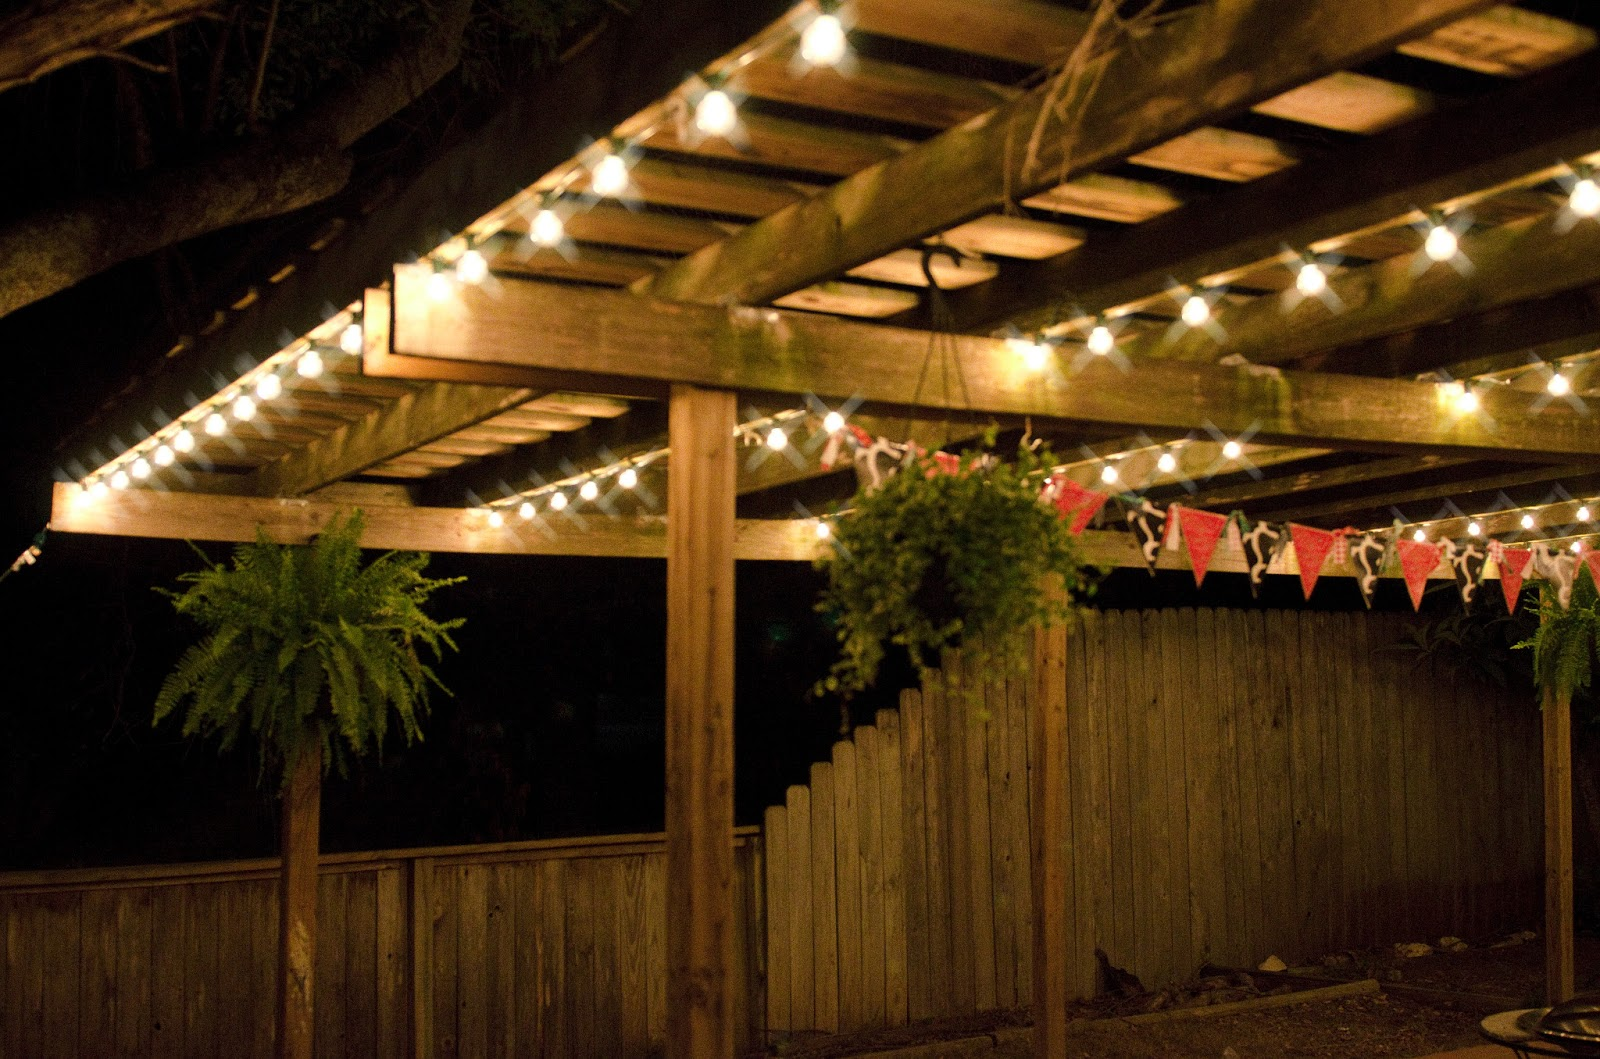 Decorative string lights outdoor - 25 tips by Making Your ... on Backyard String Light Designs id=20855